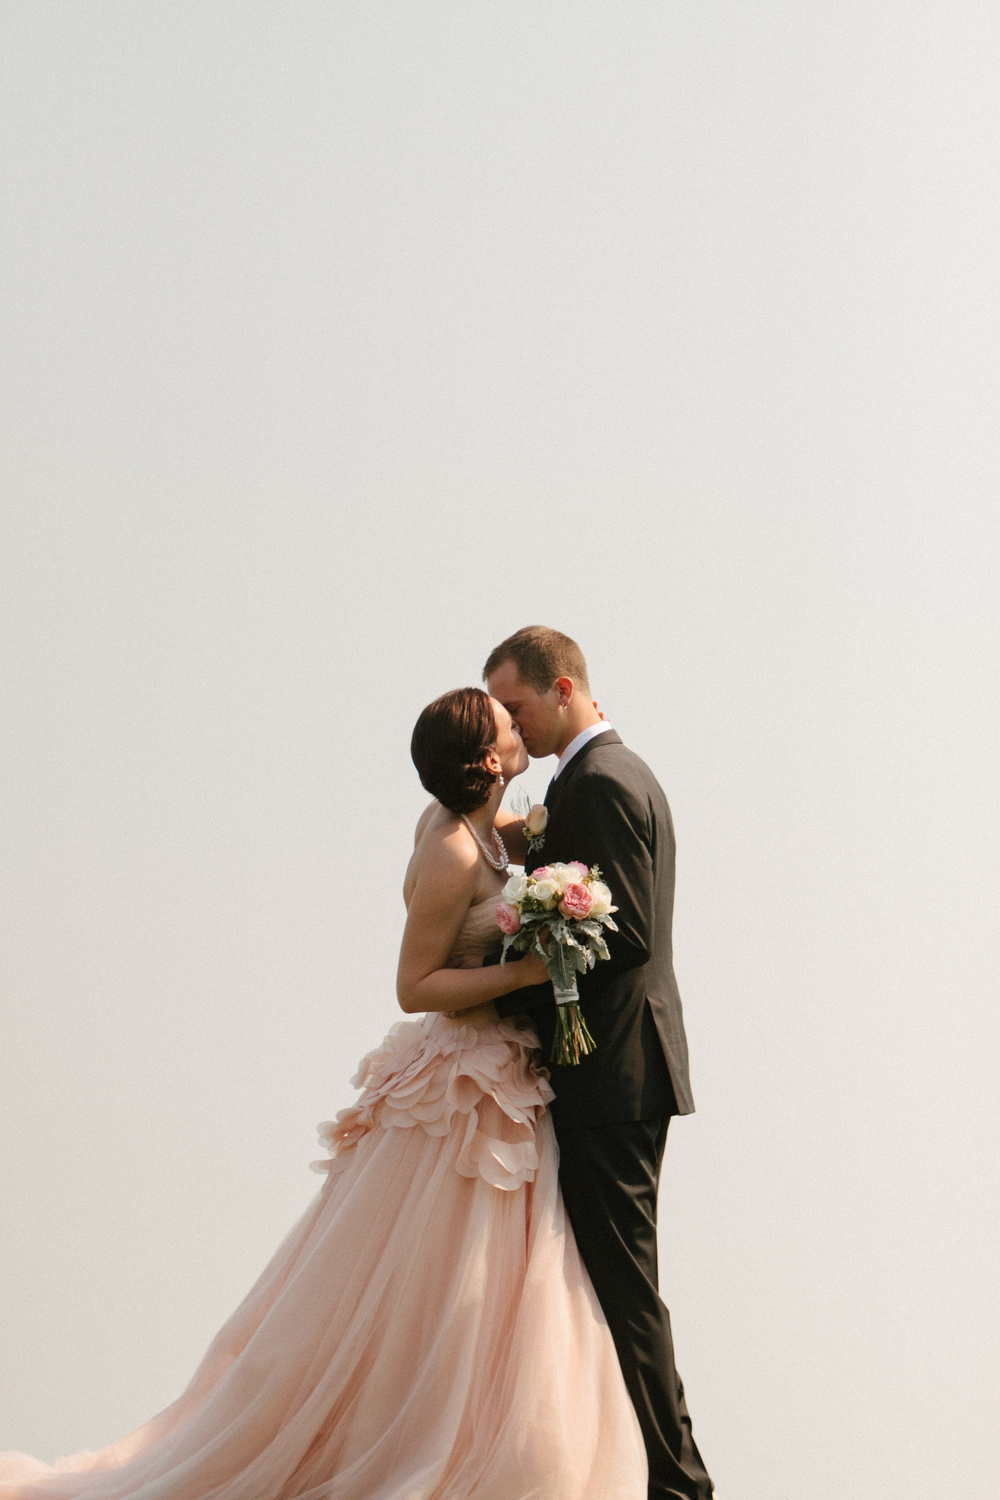 Stunning Photo of the Bride and Groom Kissing | Wedding Gown by Vera Wang | photo by blf Studios | wedding by Madeline's Weddings